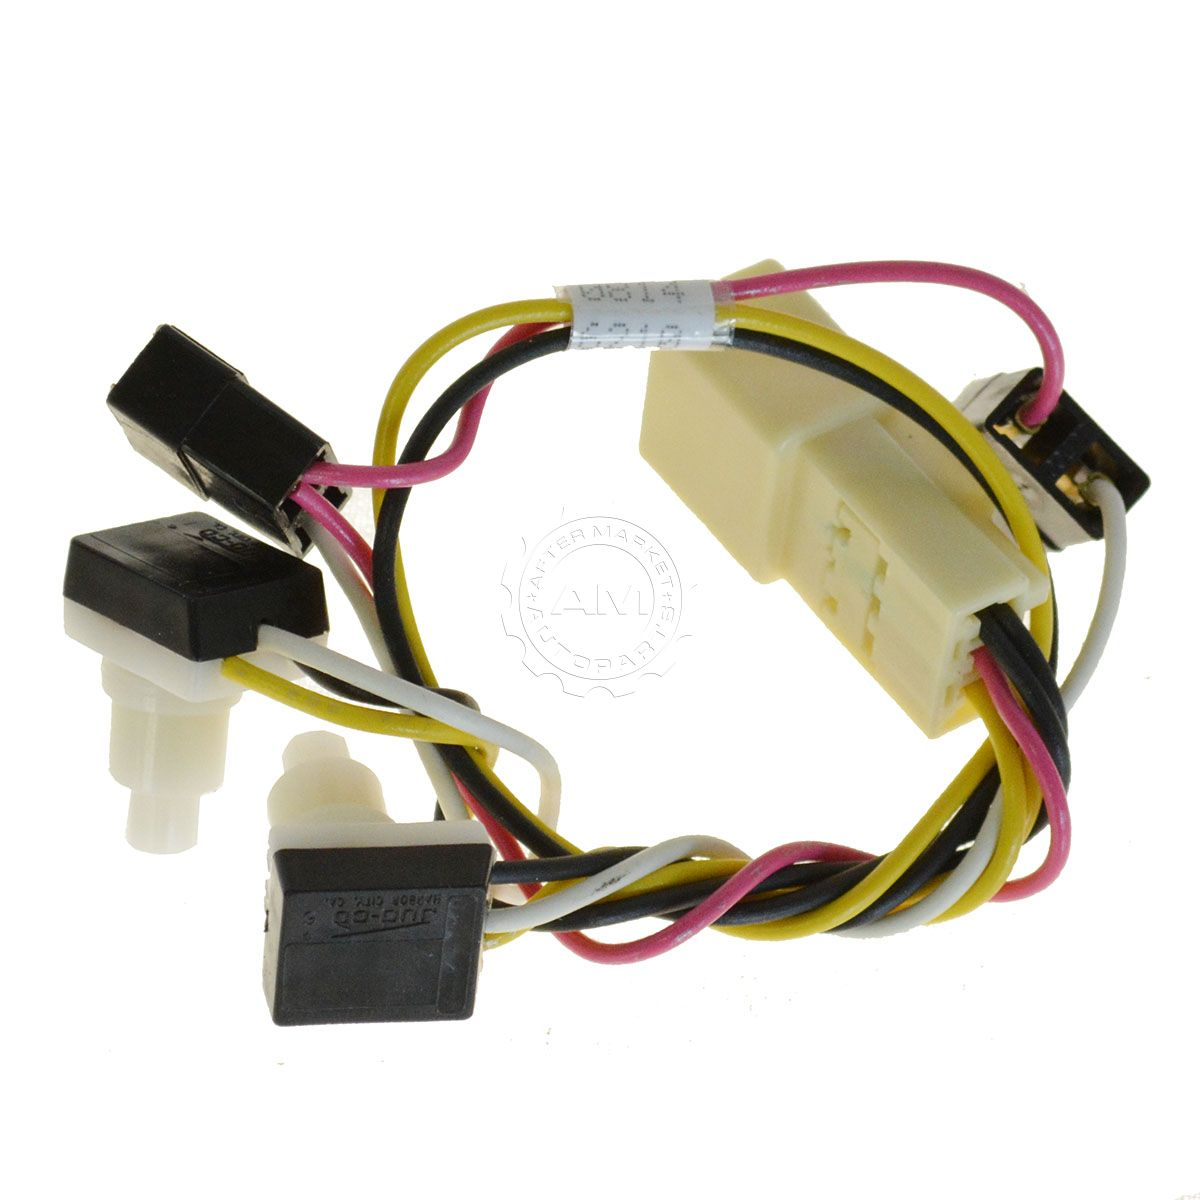 AM 1654819132 oem overhead console map light wiring harness & switches for dodge  at virtualis.co